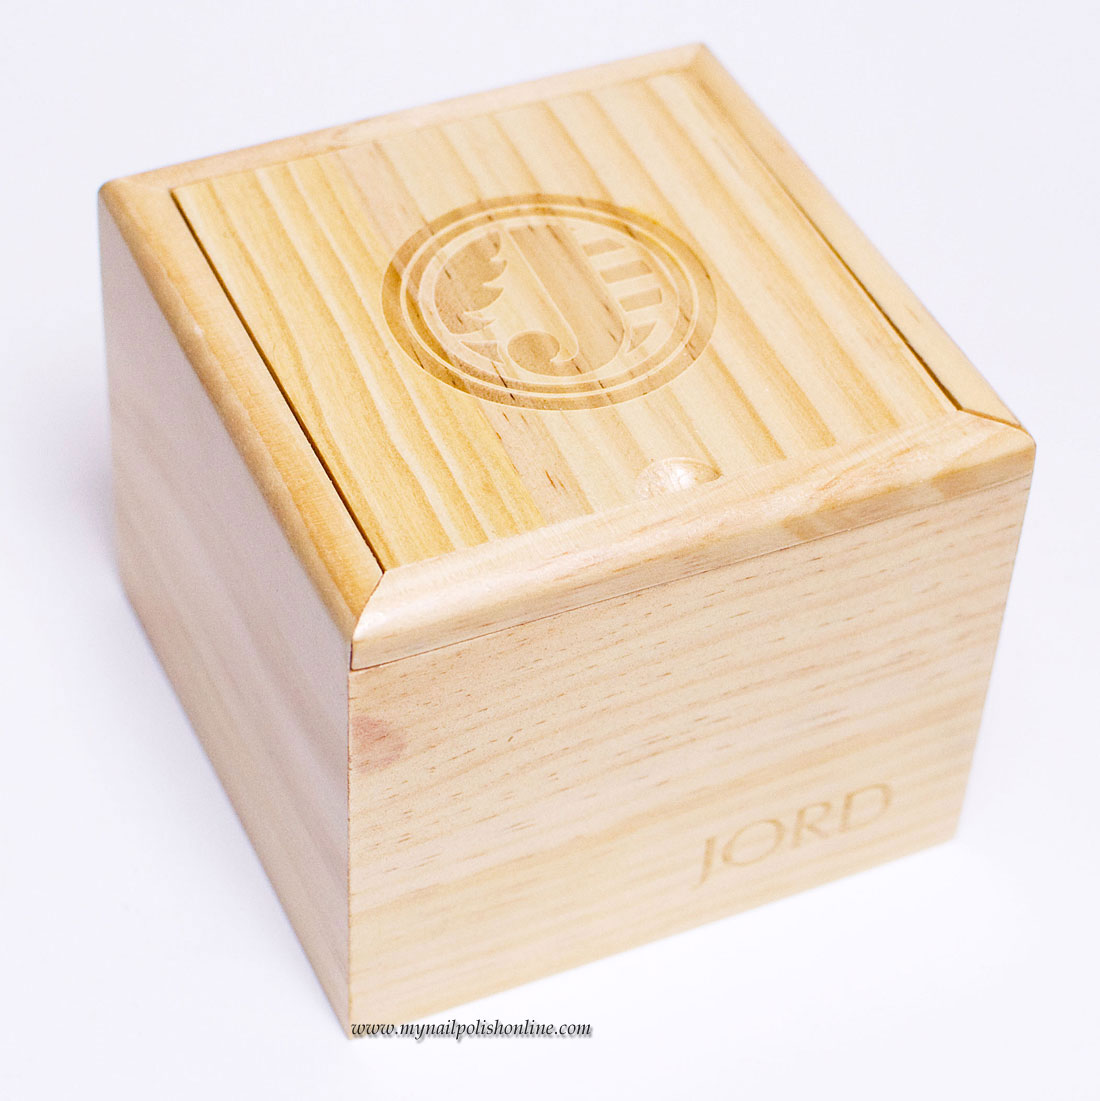 The watch comes in a wood box